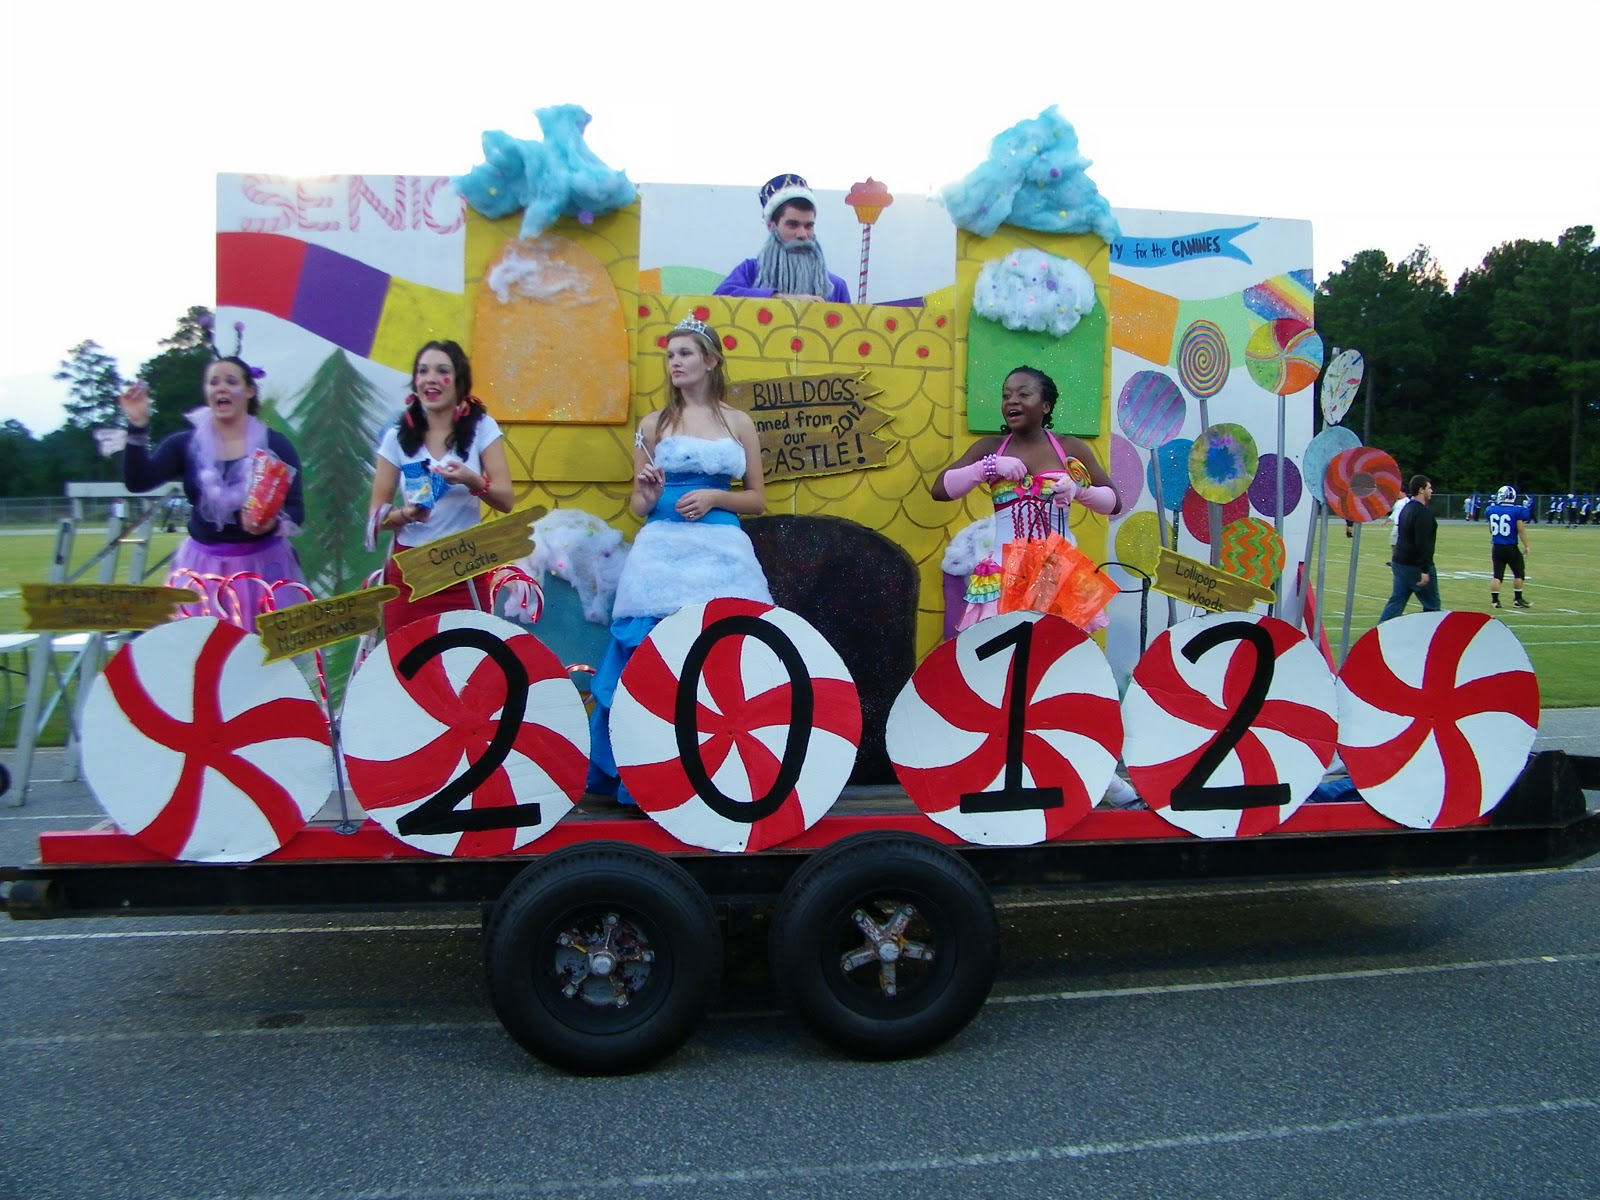 Christmas parade ideas - Homecoming 4 Of 4 From Floats To Royalty